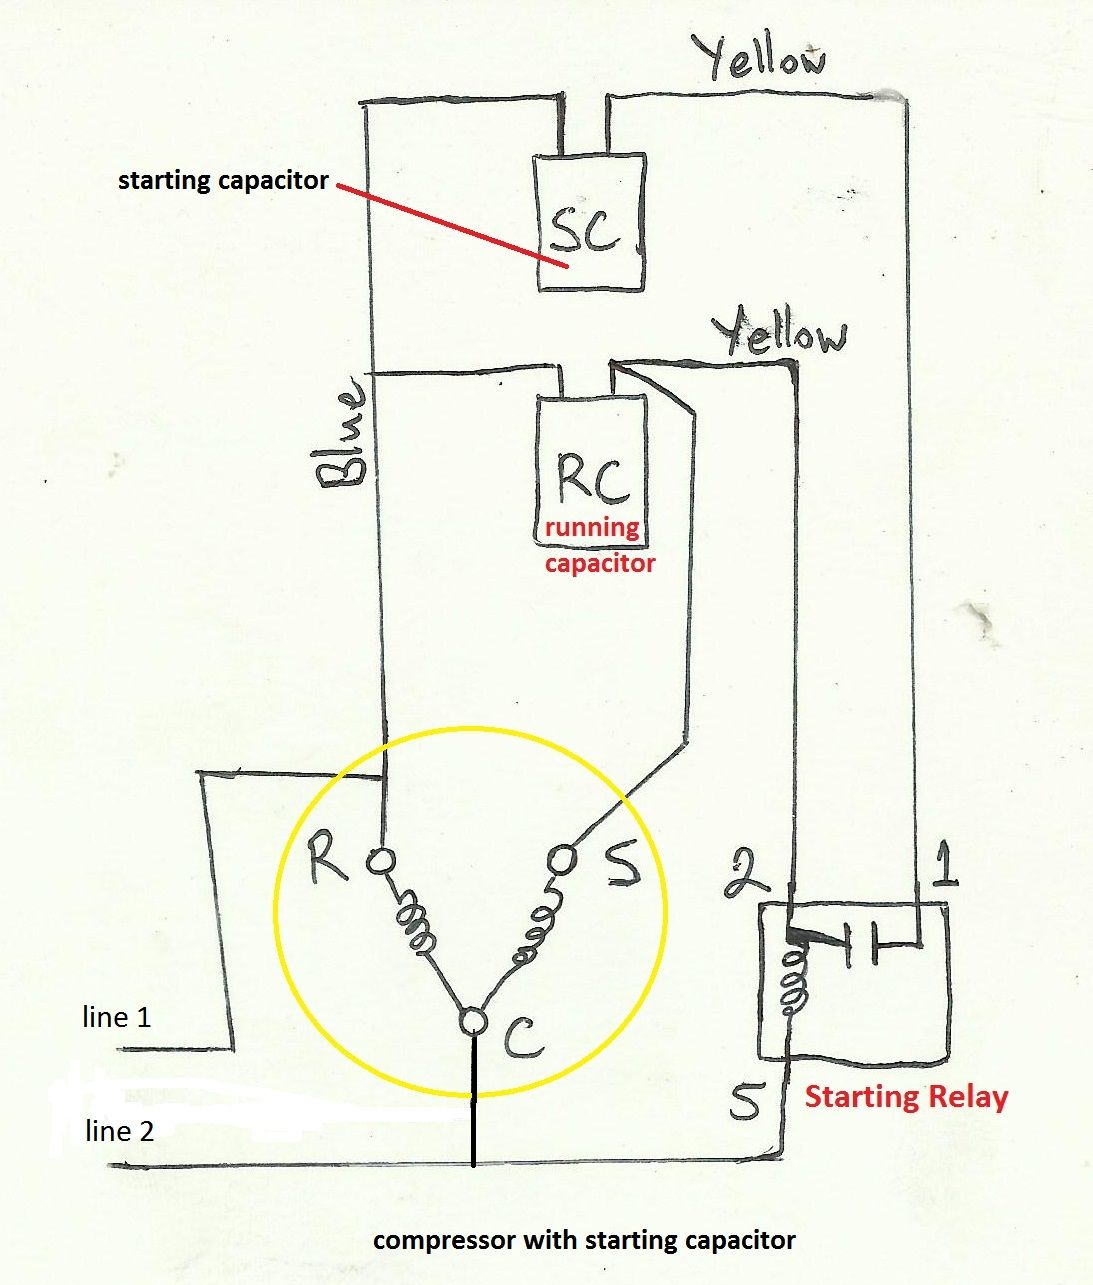 Ac Wiring Diagram Schematic Name Smc Manifold Block Air Compressor Capacitor Before You Call A Repair 06 4500 Chevy